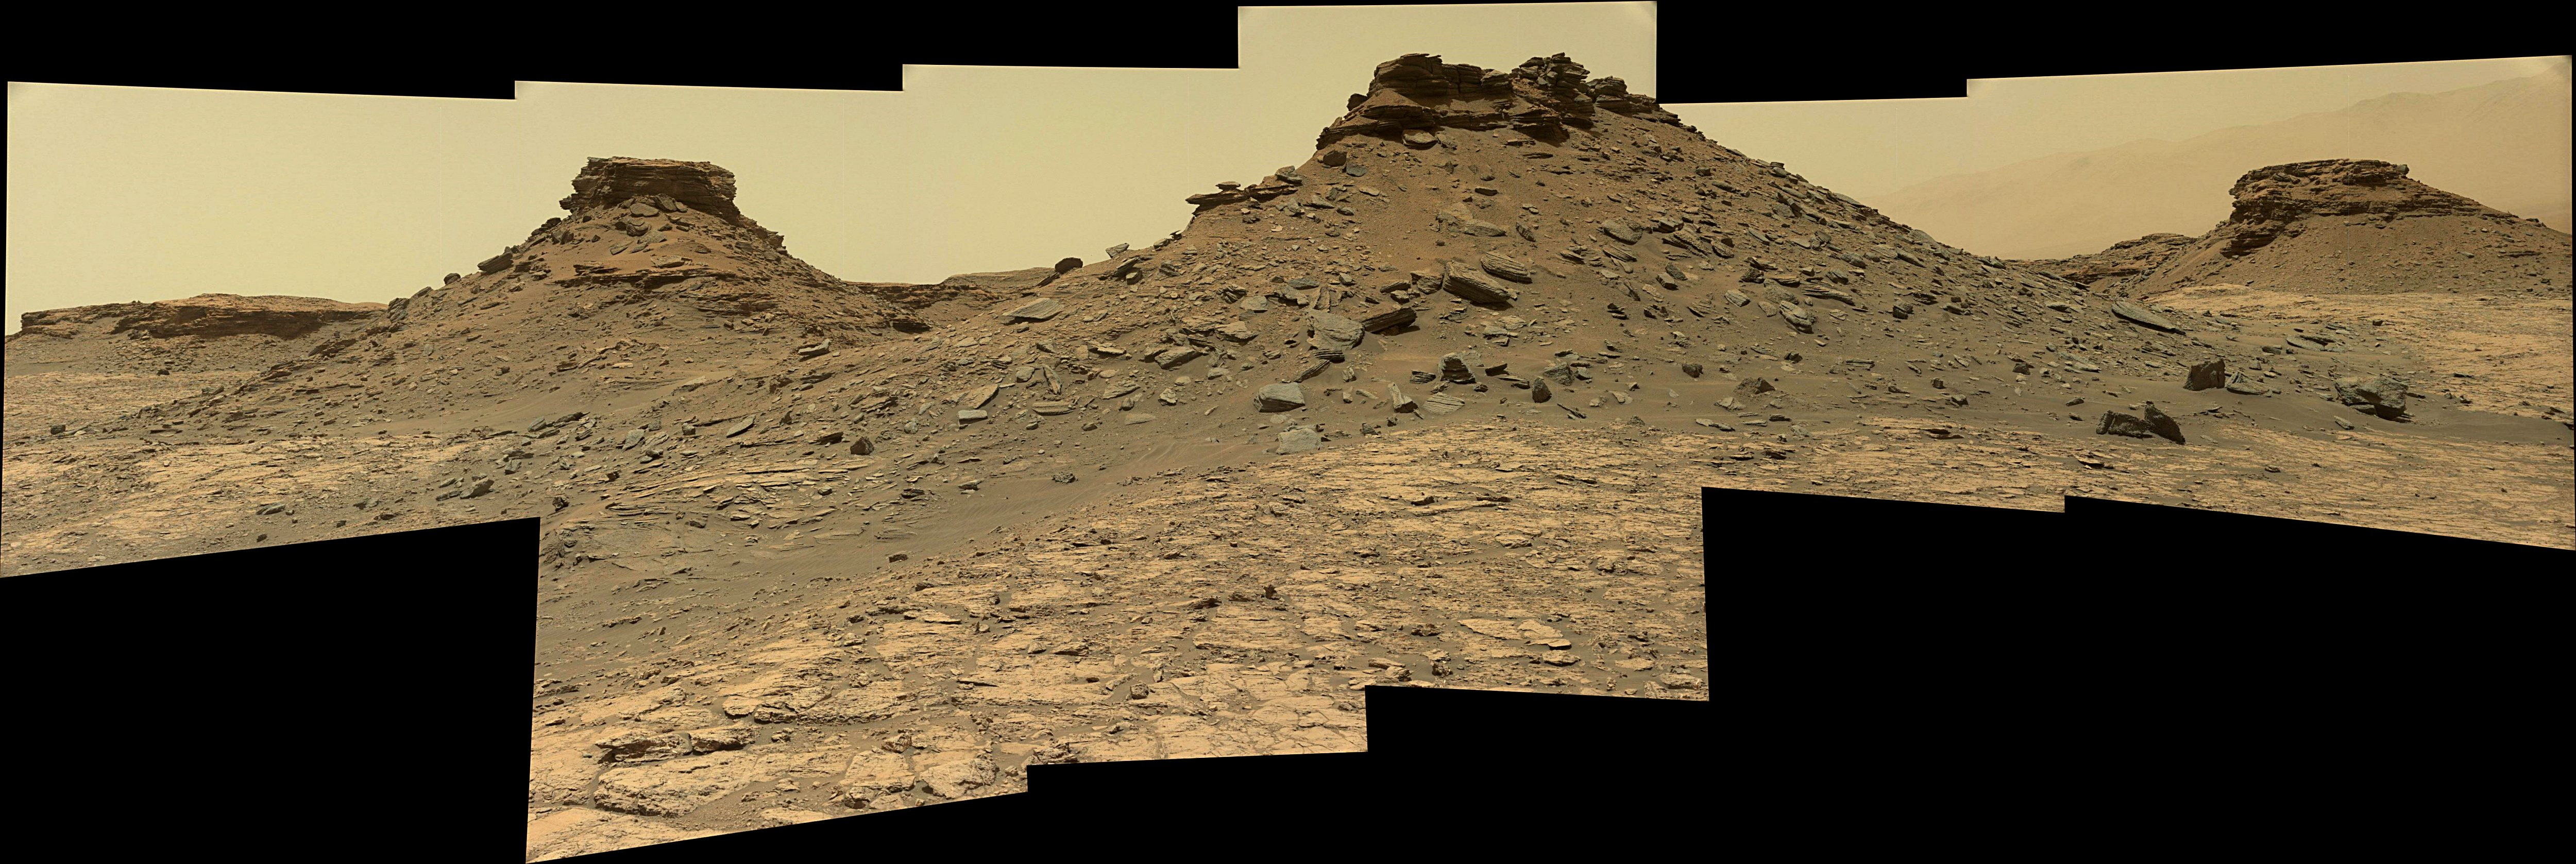 panoramic curiosity rover view 2e - sol 1432 - was life on mars